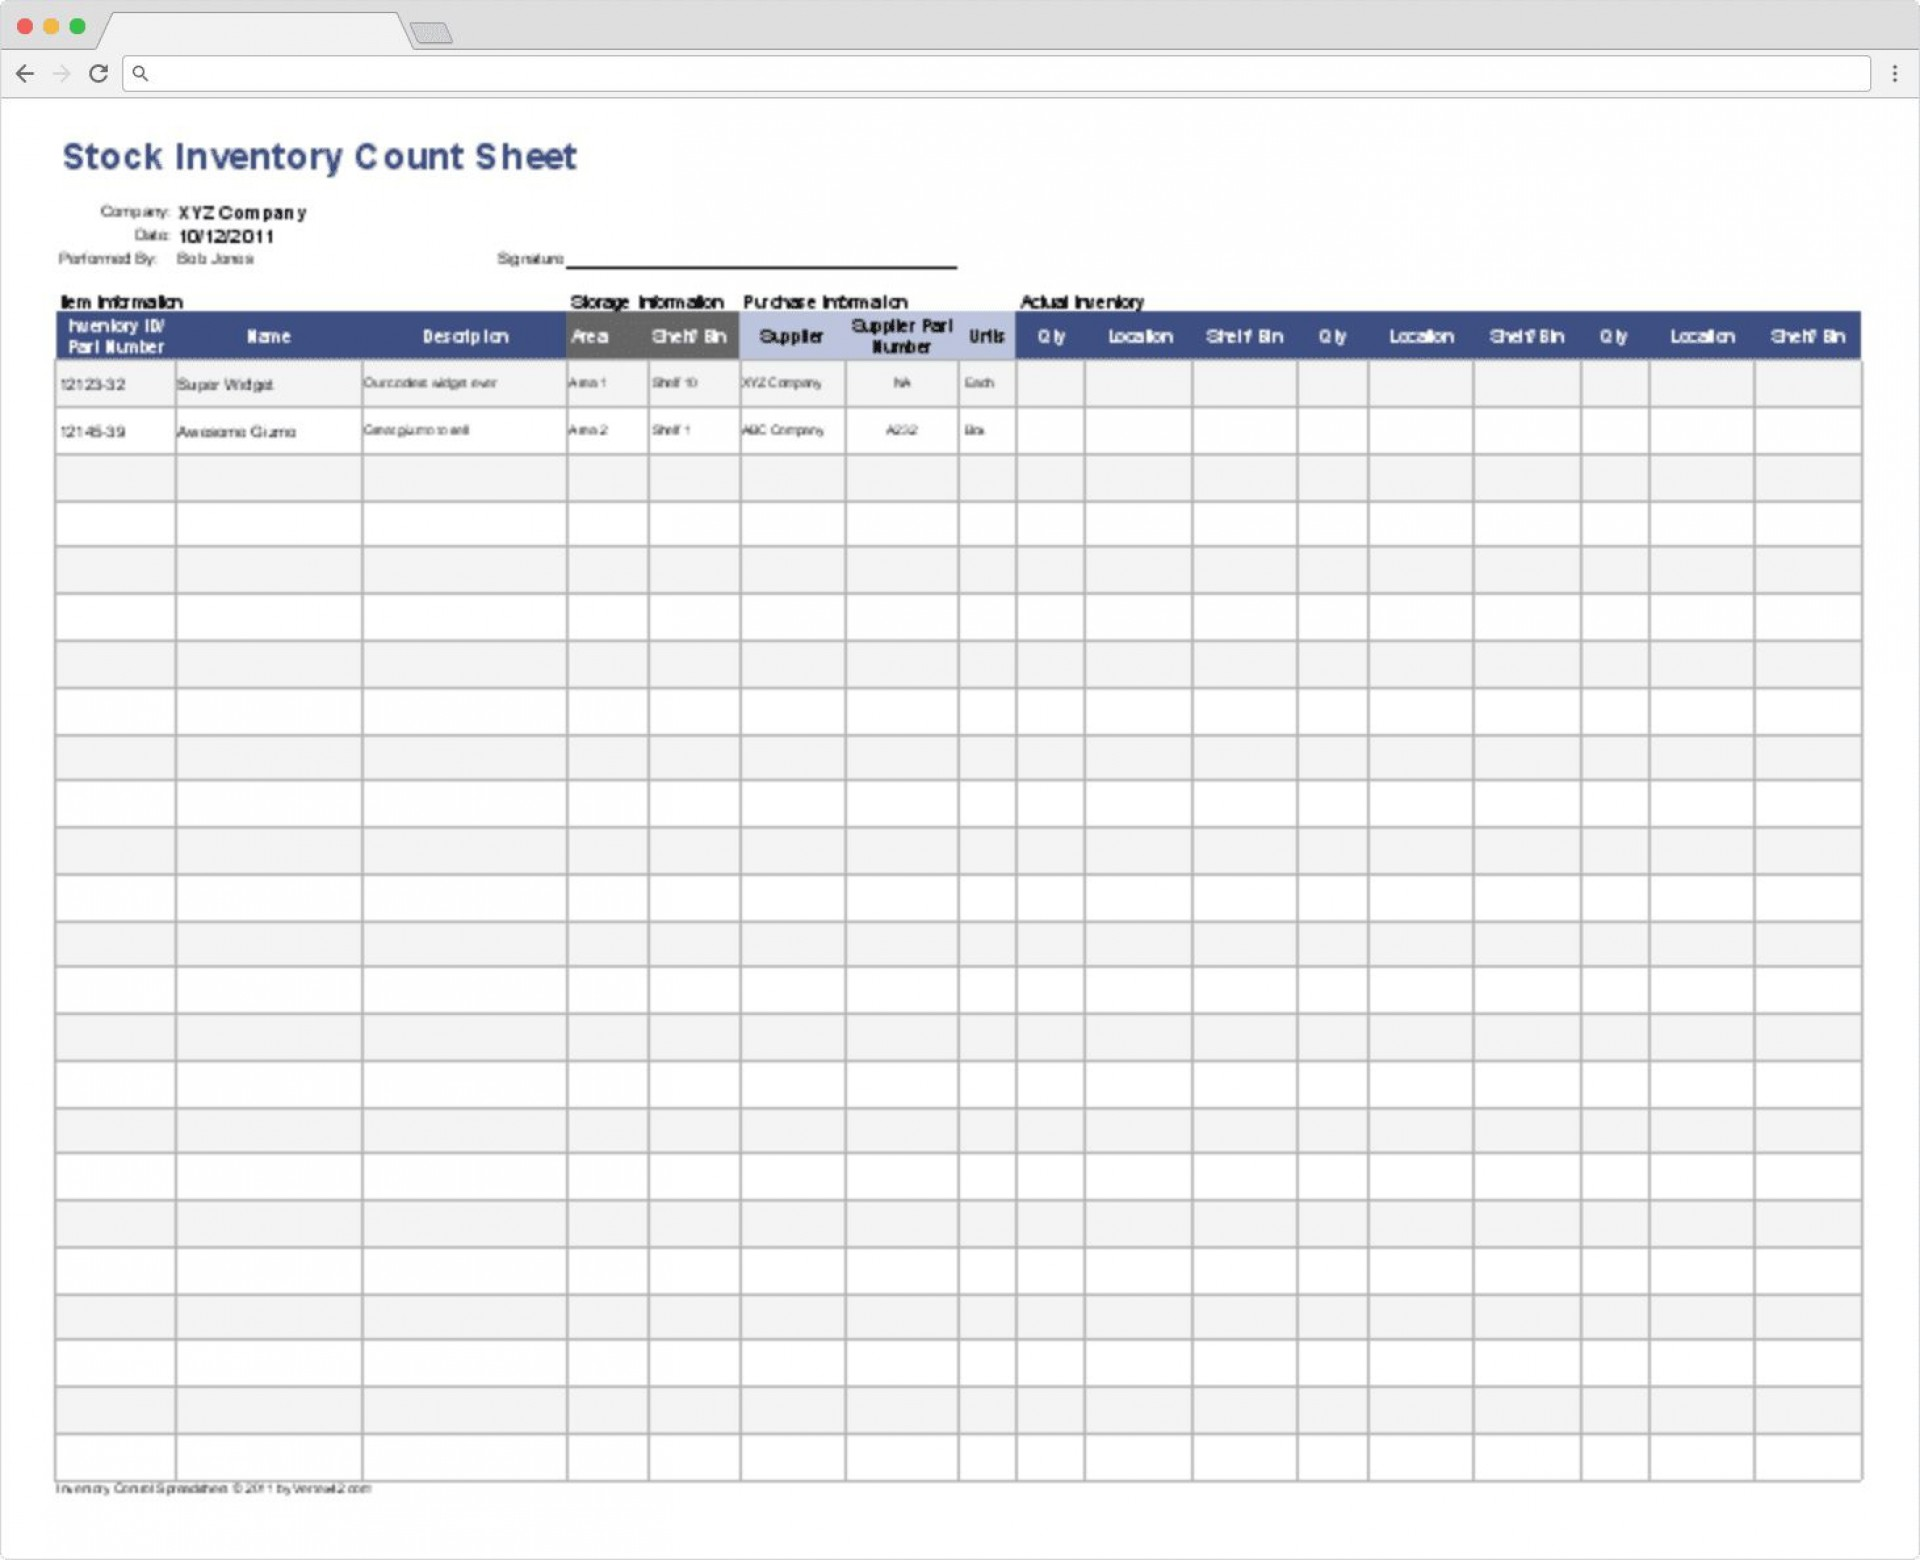 007 Phenomenal Office Supply Inventory Template Design  List Excel Medical1920